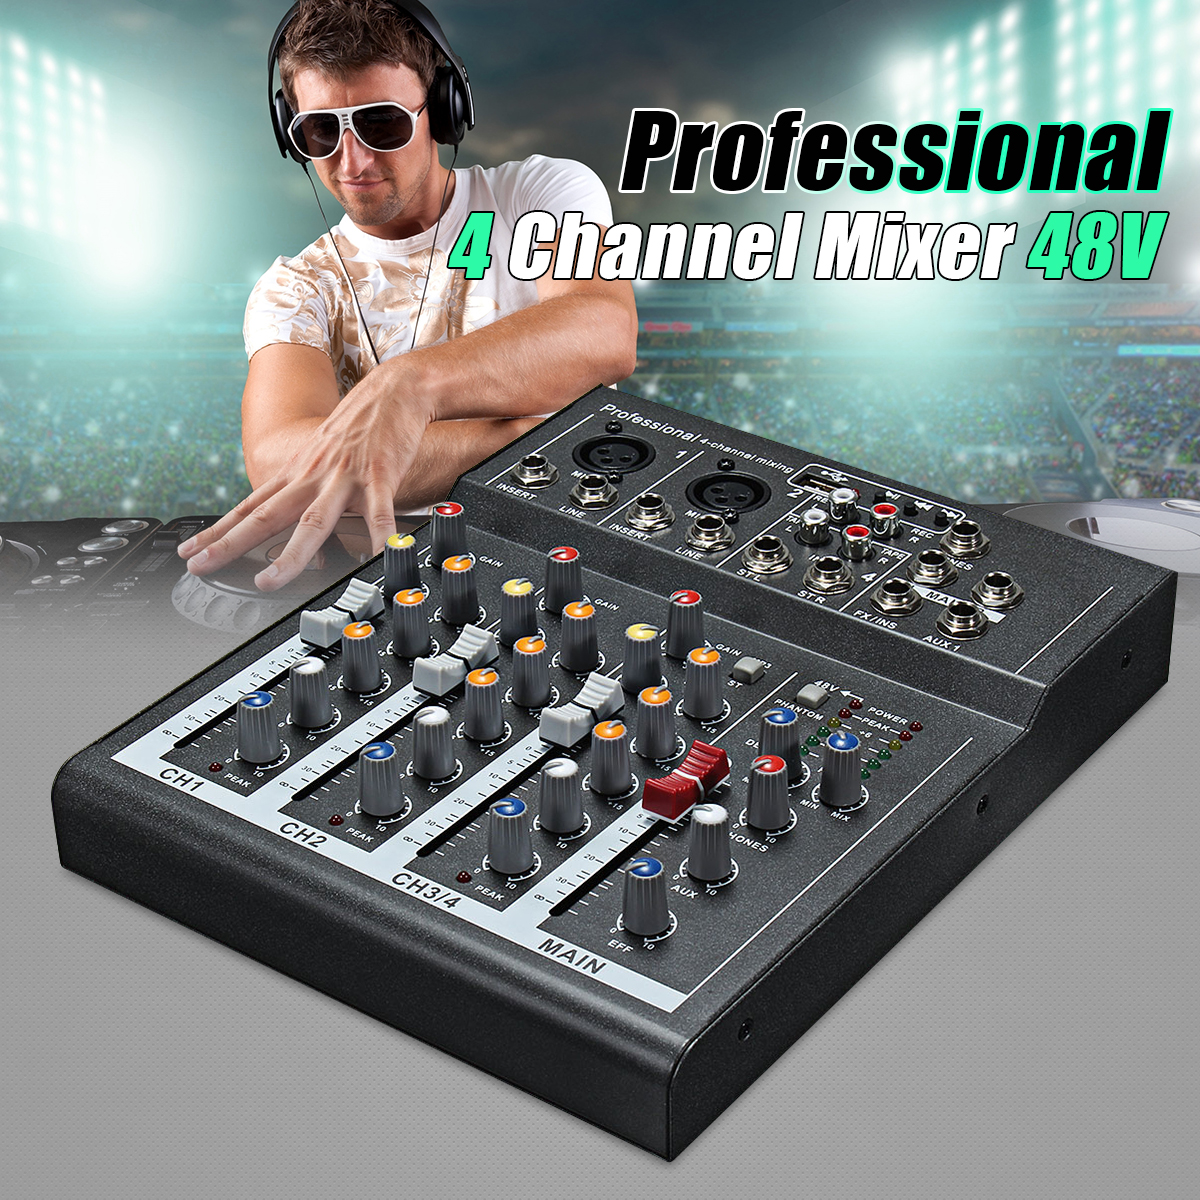 4 Channel Mini Portable Audio Mixer with USB DJ Sound Mixing Console MP3 Jack Karaoke 48V Amplifier For Karaoke KTV Match Party mini portable audio mixer with usb dj sound mixing console mp3 jack 4 channel karaoke 48v amplifier for karaoke ktv match party